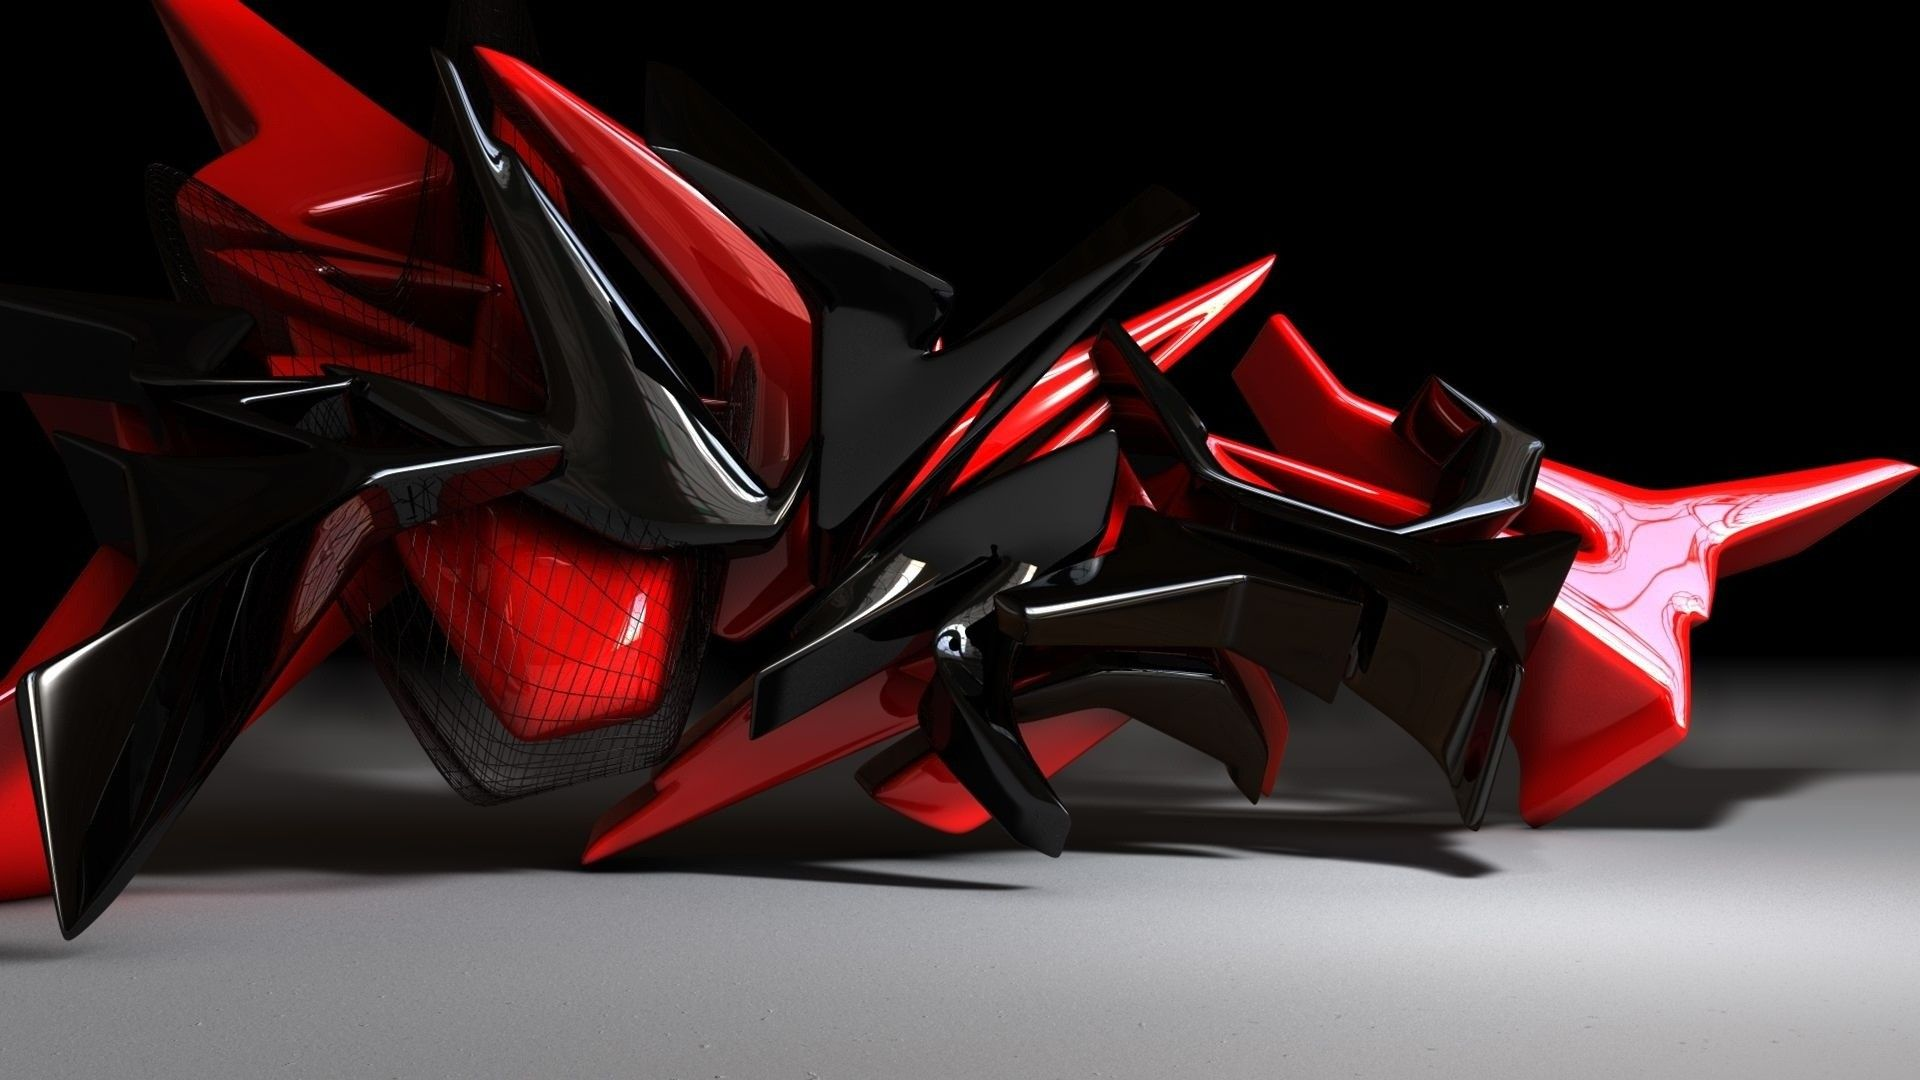 Cool Wallpapers 3d Designs Red And Black Wallpaper Cool Wallpapers For Phones Cool Images Hd